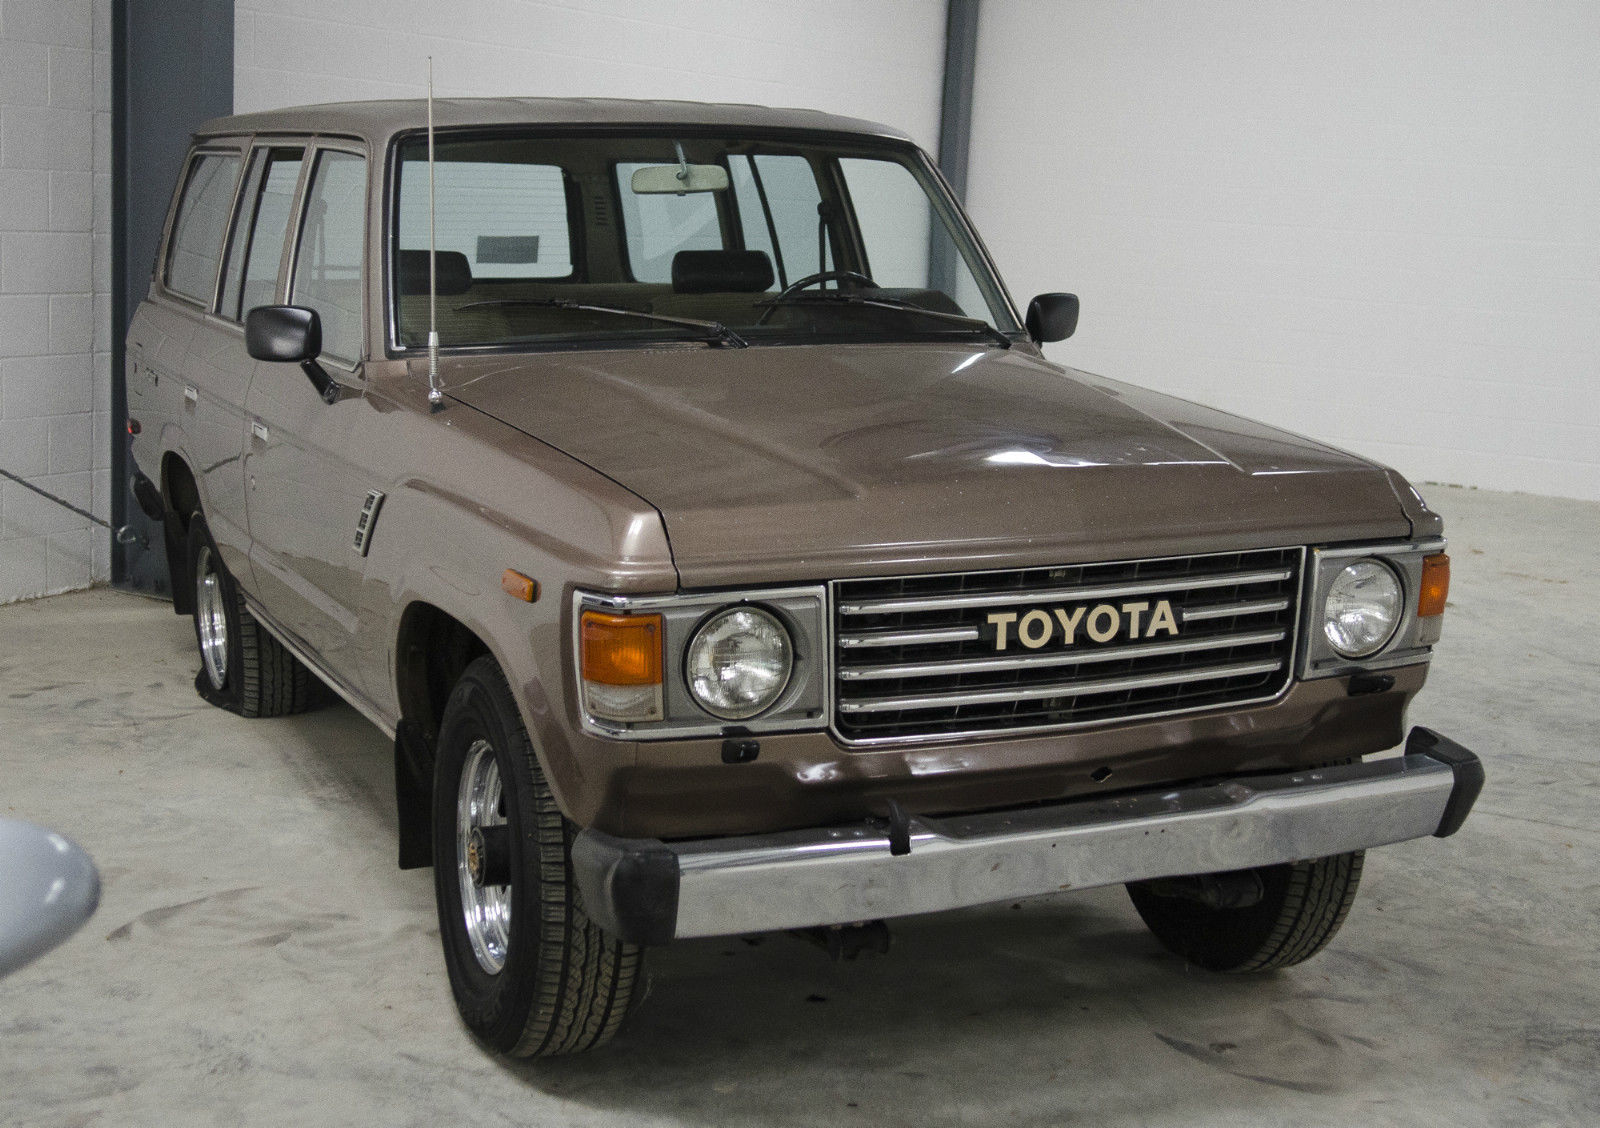 1985 toyota land cruiser project car classic toyota land cruiser 1985 for sale. Black Bedroom Furniture Sets. Home Design Ideas